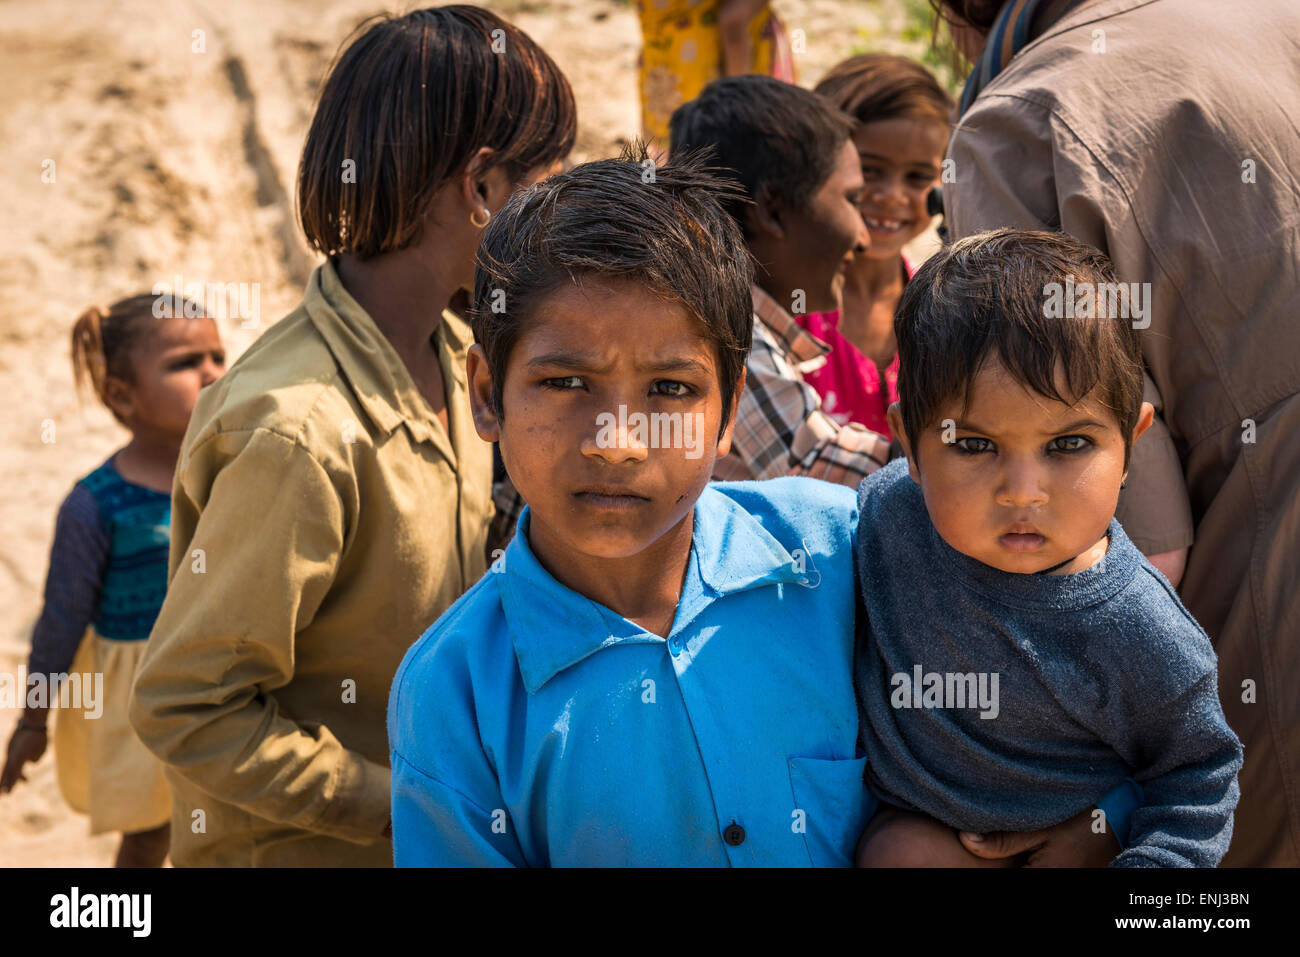 Children of the labourers at a brick works in Uttar Pradesh, India - Stock Image